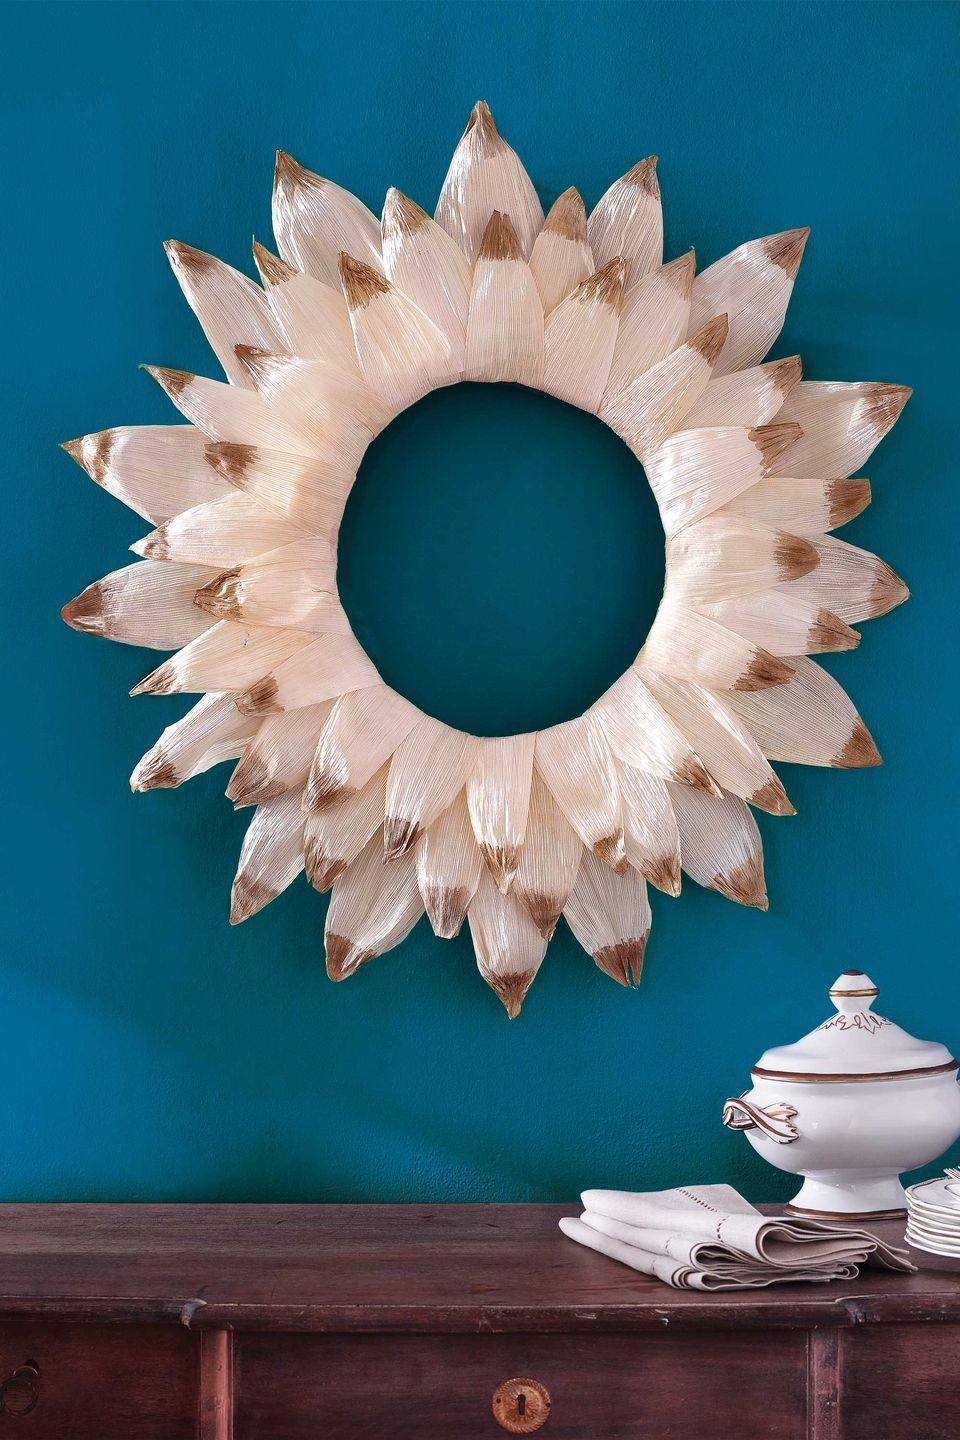 <p>Paint the tips for an elegant twist on this harvest staple.</p><p><strong>Step 1: </strong>Wrap corn husks around an 18-inch diameter straw wreath, using a hot-glue gun to adhere the edges. You'll need about 35 husks to completely cover the wreath form.</p><p><strong><strong>Step 2: </strong> </strong>Using a foam brush, paint the tips of 48 additional corn husks with gold acrylic paint; let dry (about 15 minutes).</p><p><strong>Step 3: </strong> Starting with the outer edge of the wreath, use hot-glue to adhere three concentric rings of 16 corn husks each. (Attach the second ring to the middle of the wreath and the third to its inner edge.) For the second and third rings, position the tip of each corn husk between two corn husks from the previous ring.</p>